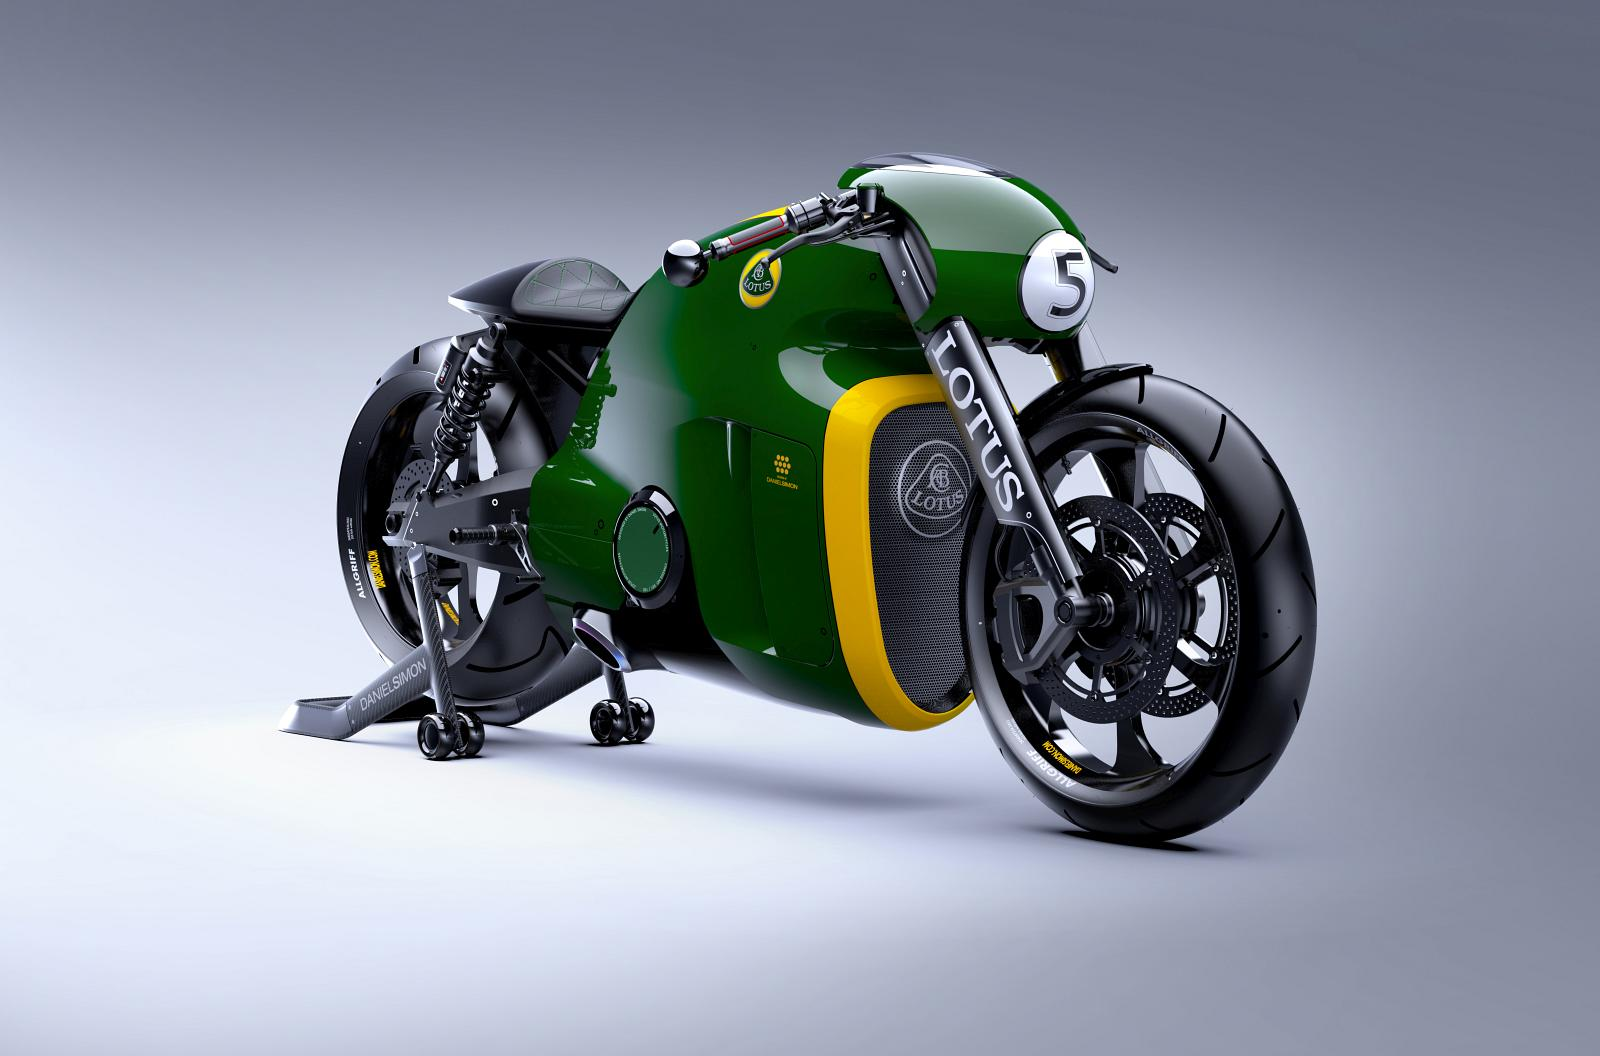 lotus-motorcycle-c01-lotus-14.jpg